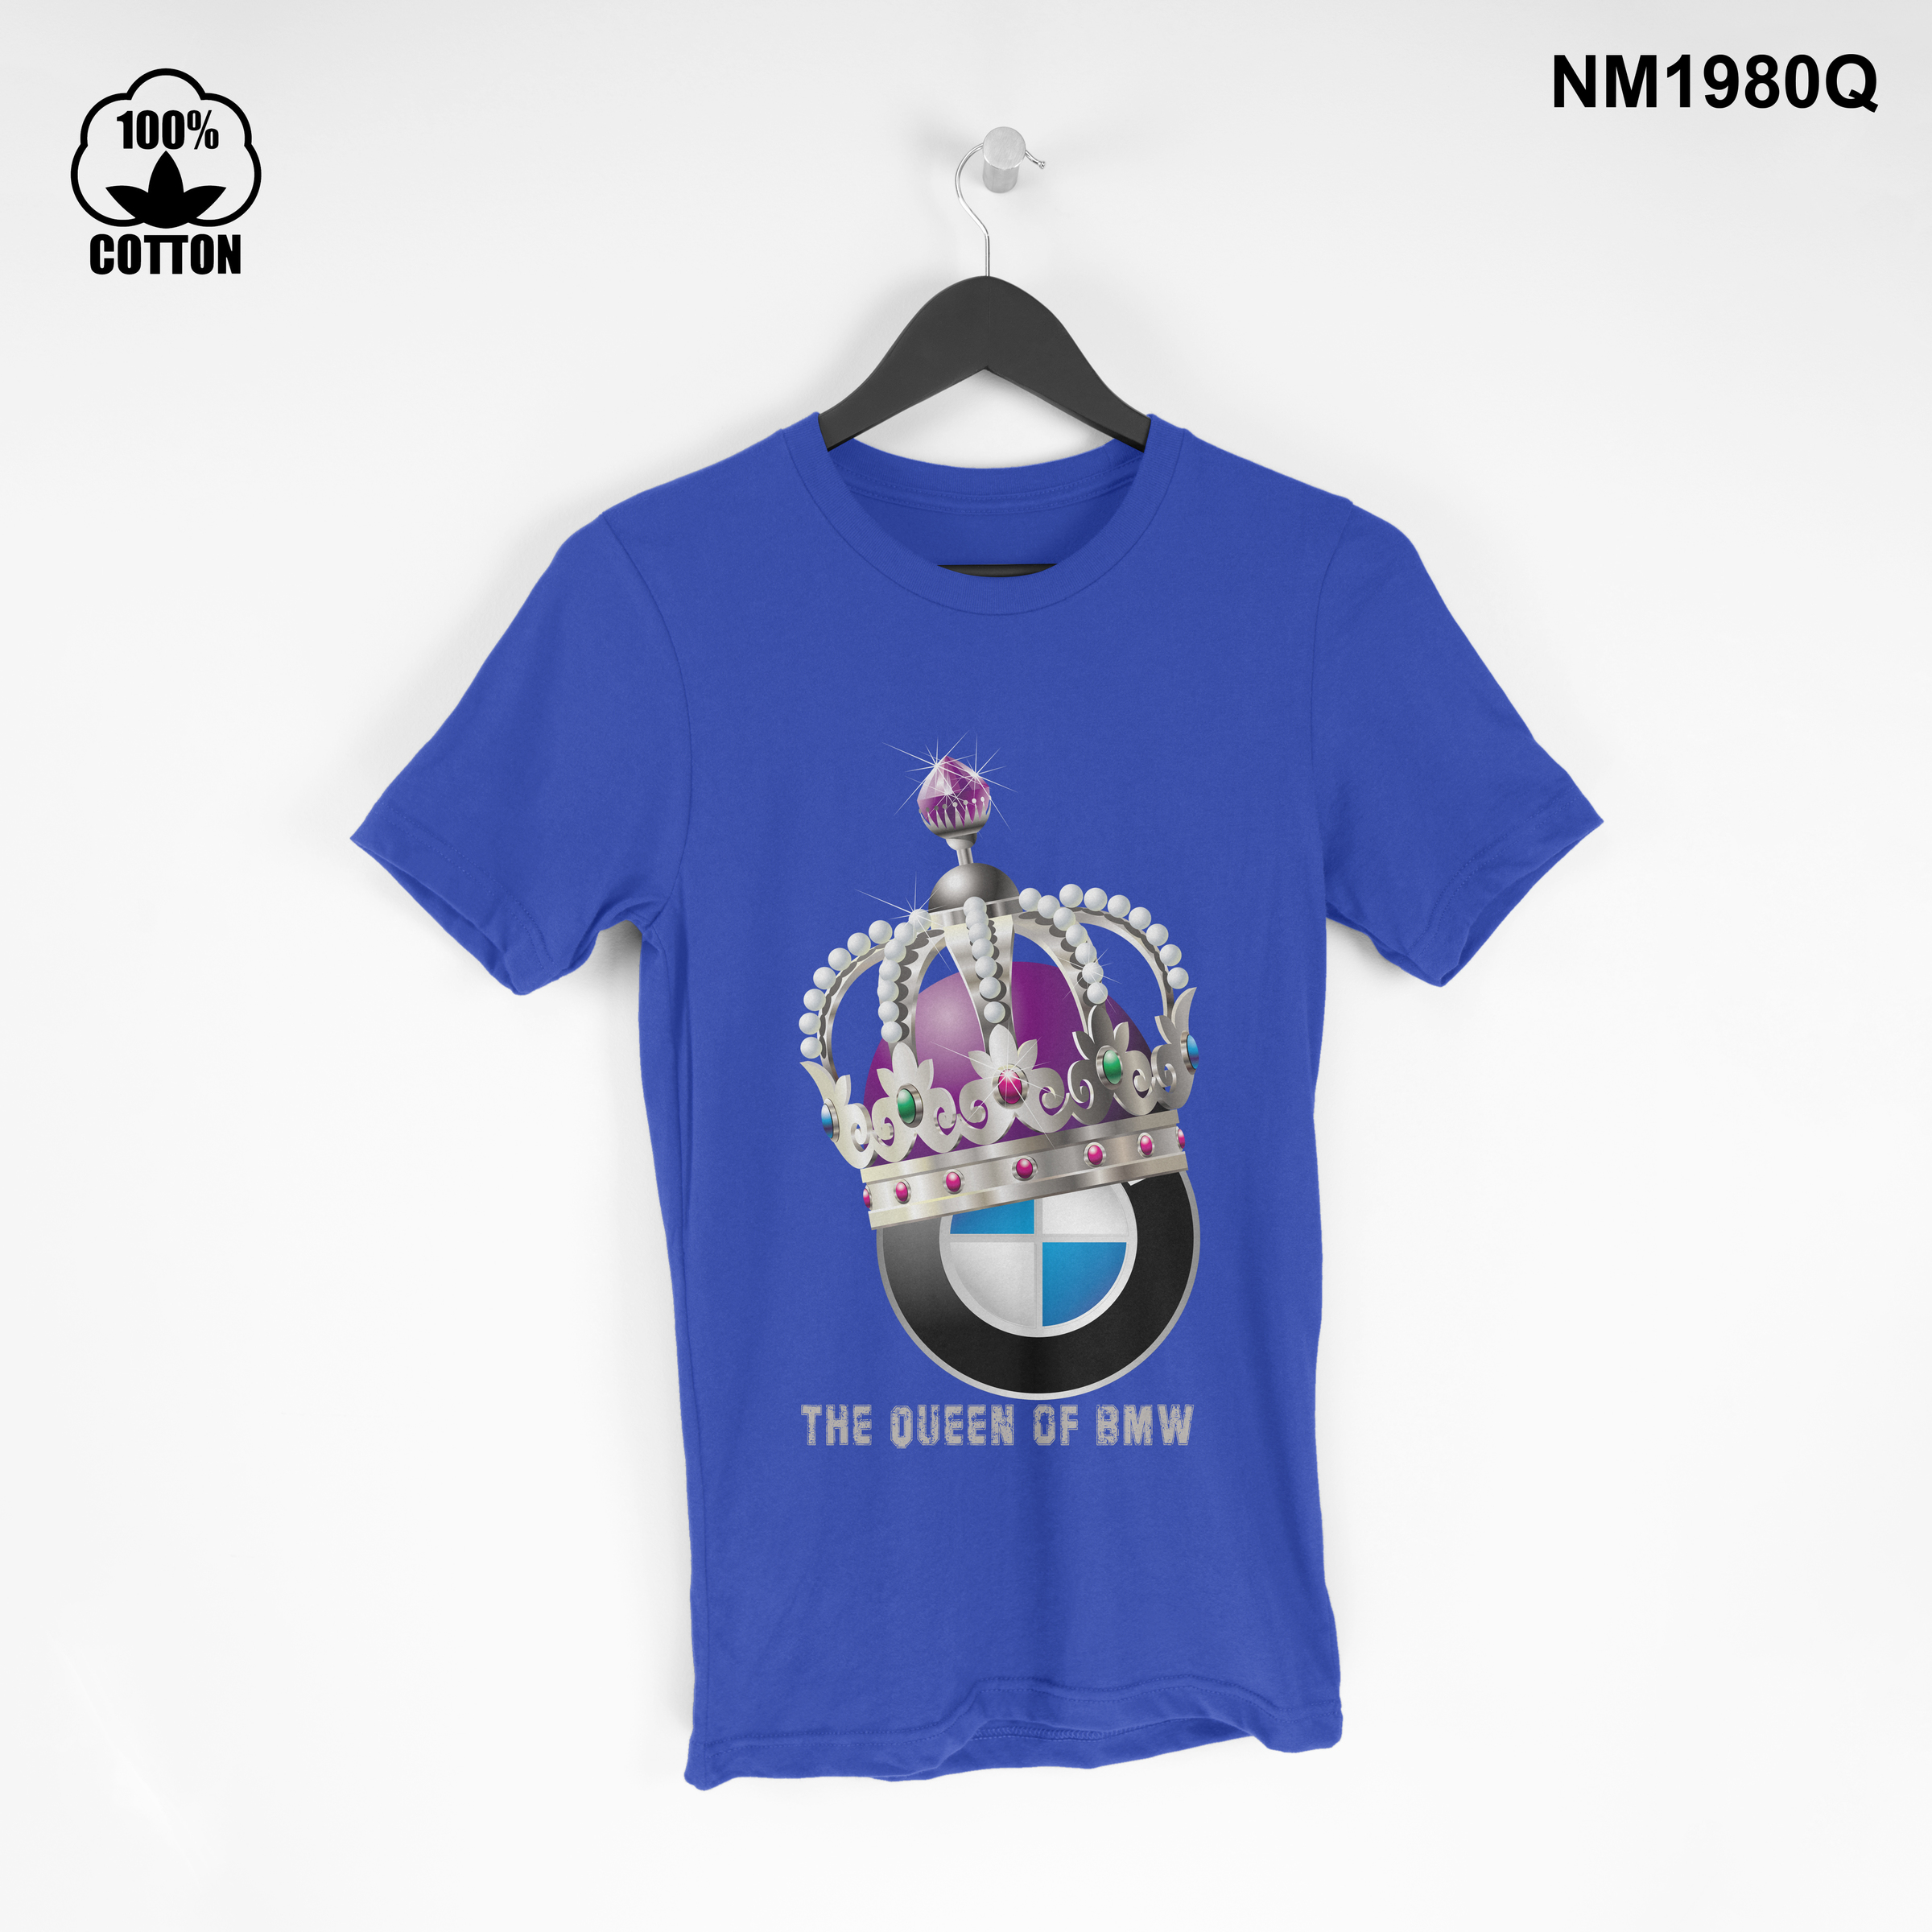 1.37 the Queen of BMW T Shirt Tee mens Clothing New Design dodger blue.jpg